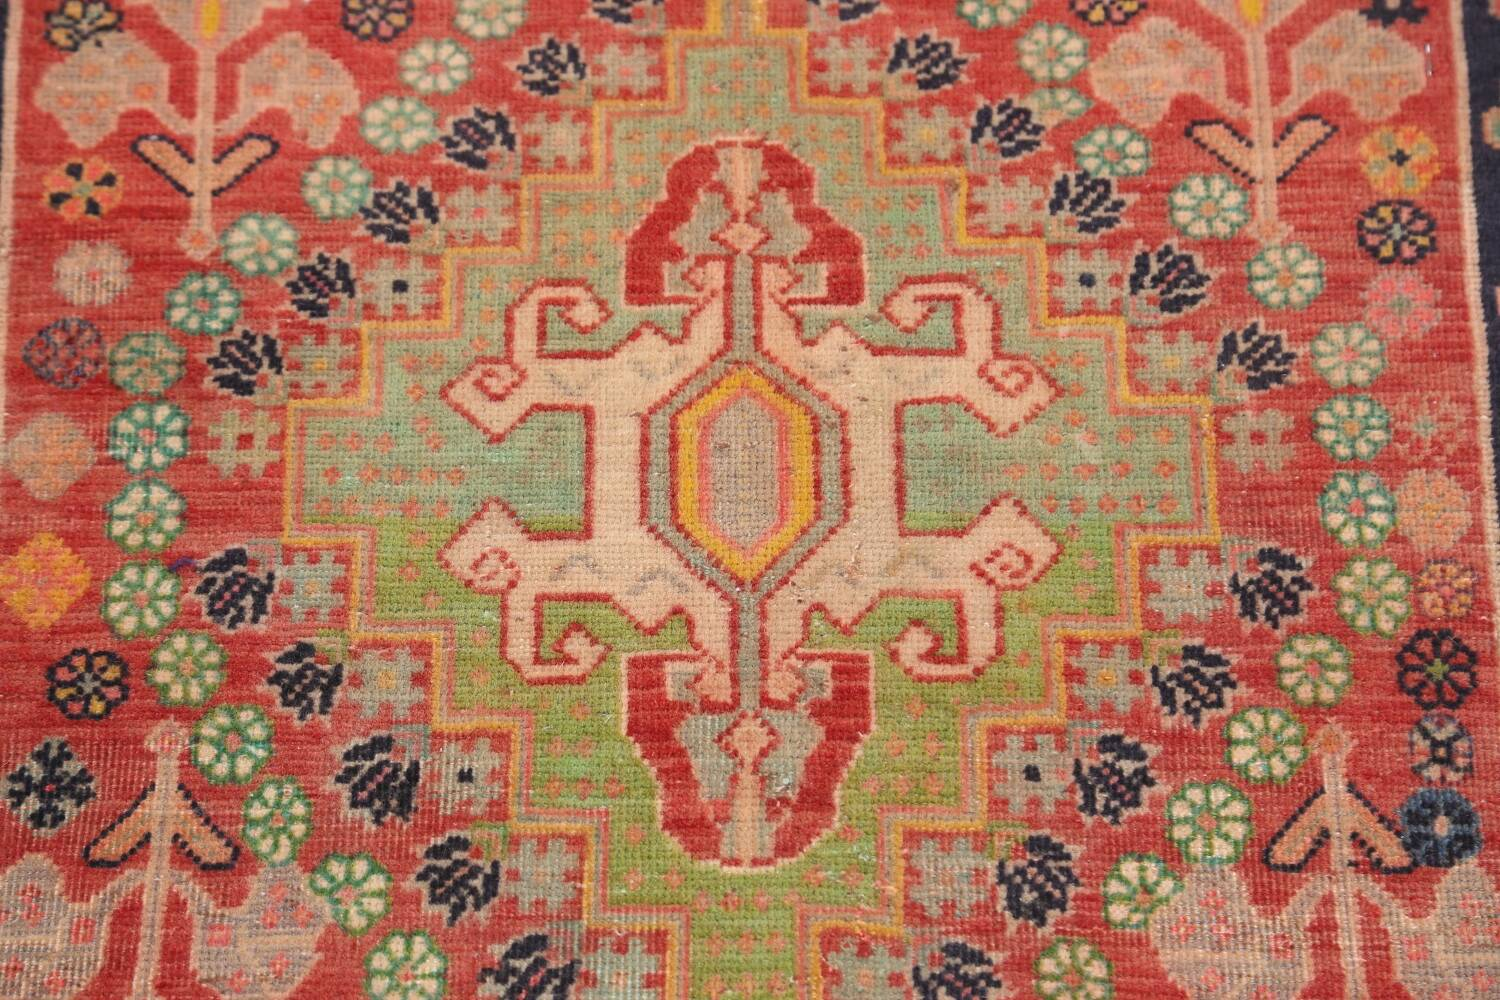 Antique 100% Vegetable Dye Abadeh Persian Rug 2x2 Square image 3